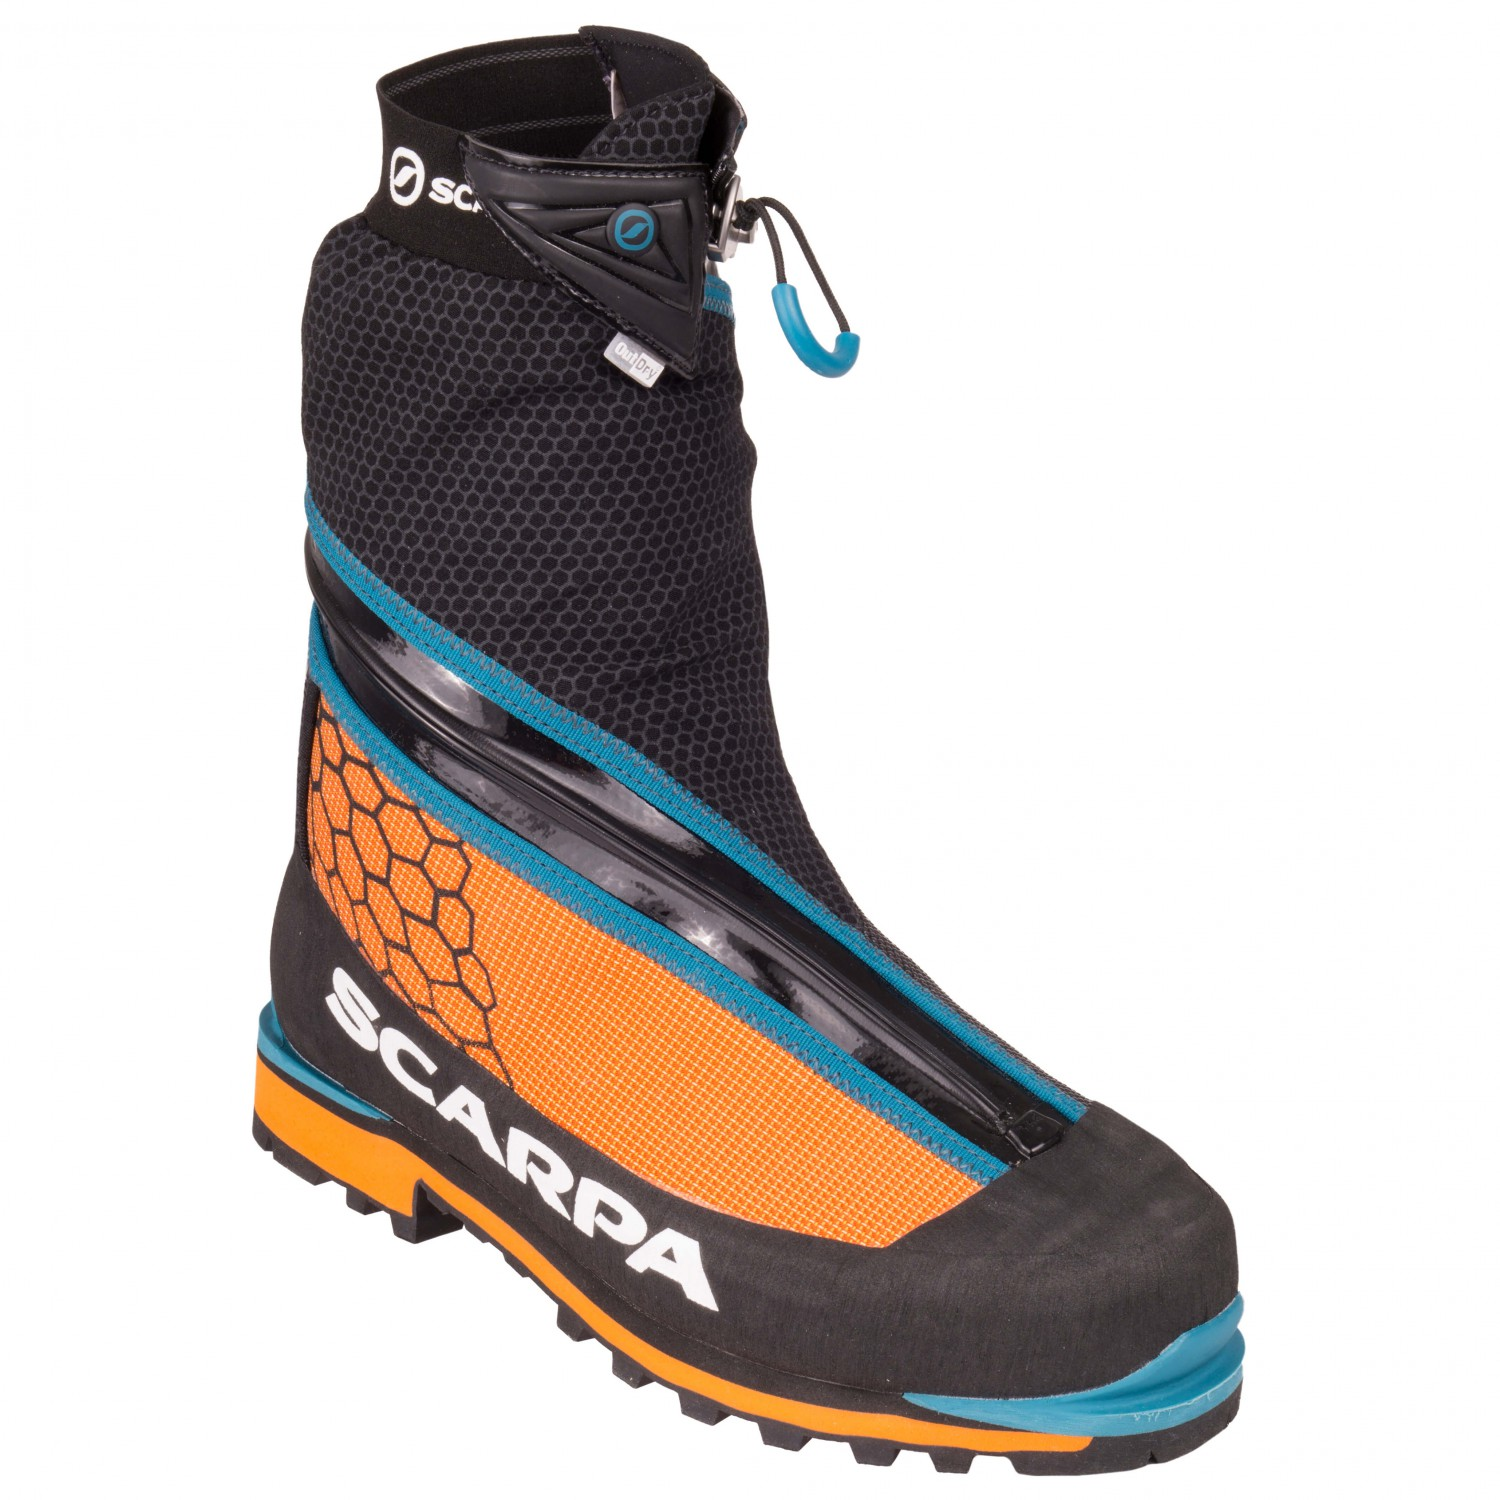 9bc2baf784832 Scarpa Phantom Tech - Mountaineering Boots Men s